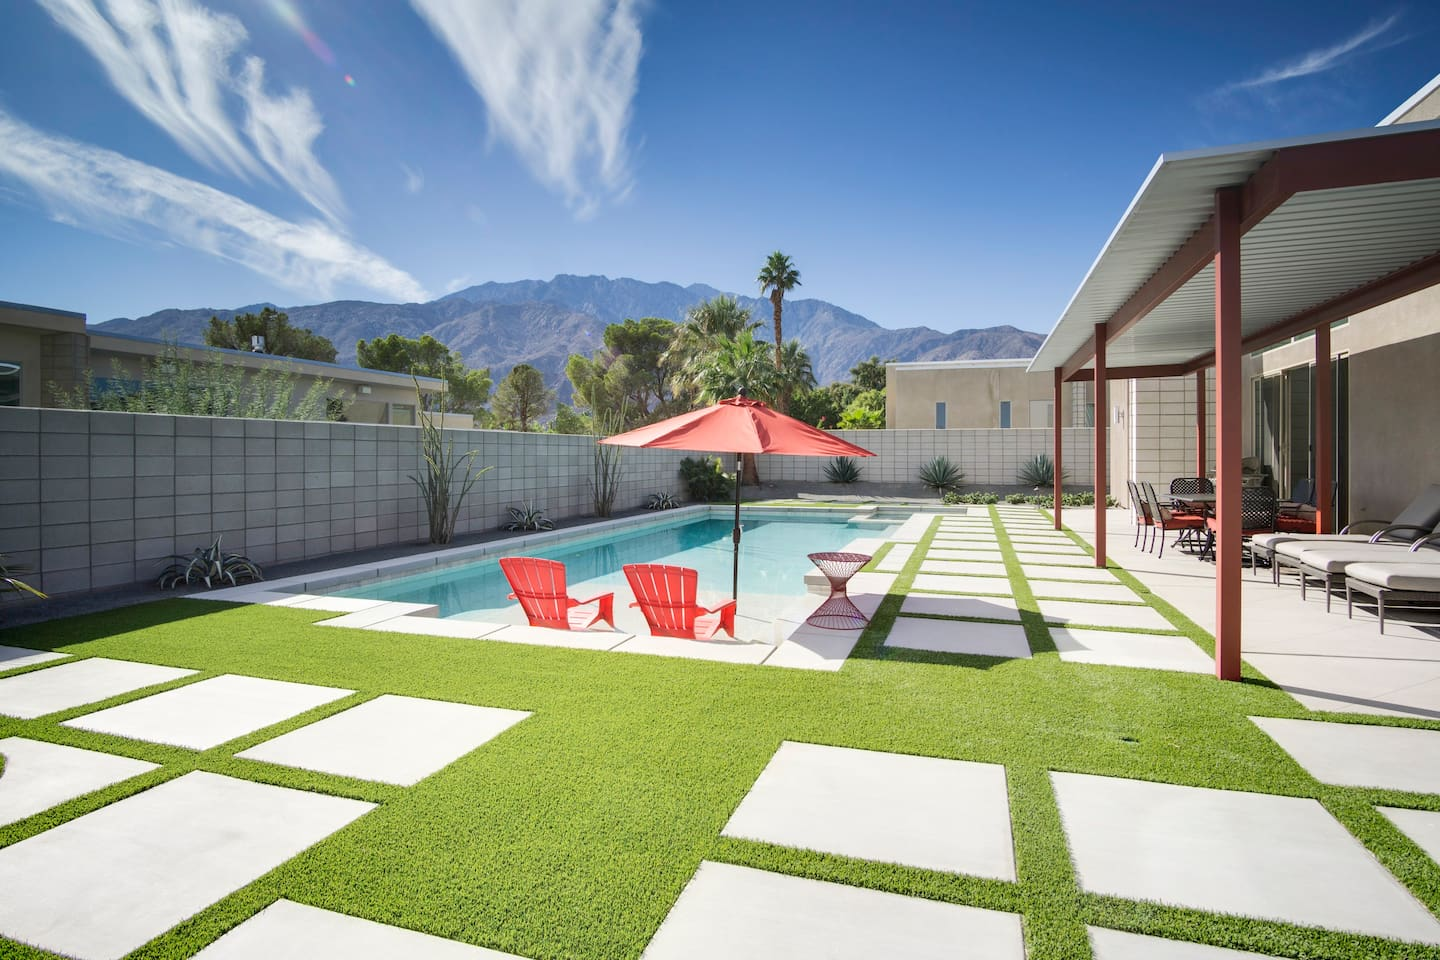 Gorgeous views of the desert mountains anchor the backyard.